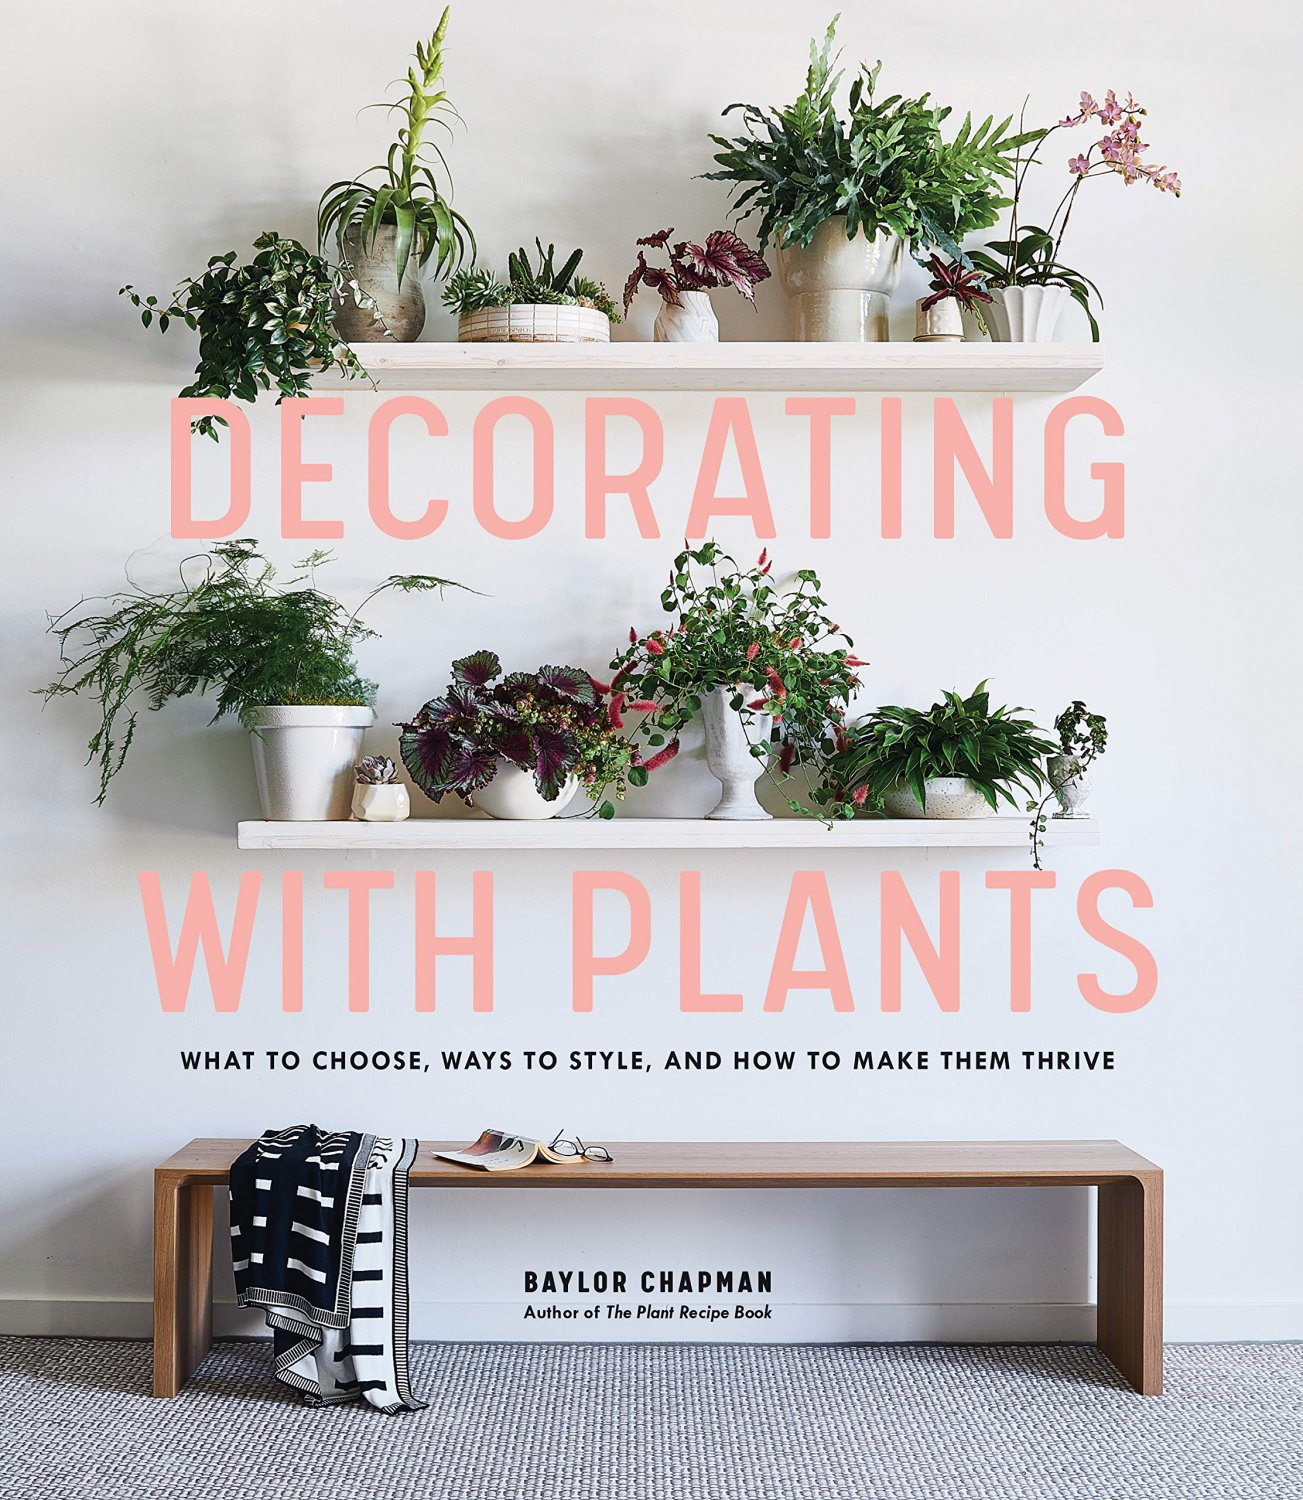 Decorating with Plants: What to Choose, Ways to Style, and How to Make Them Thrive Hardcover